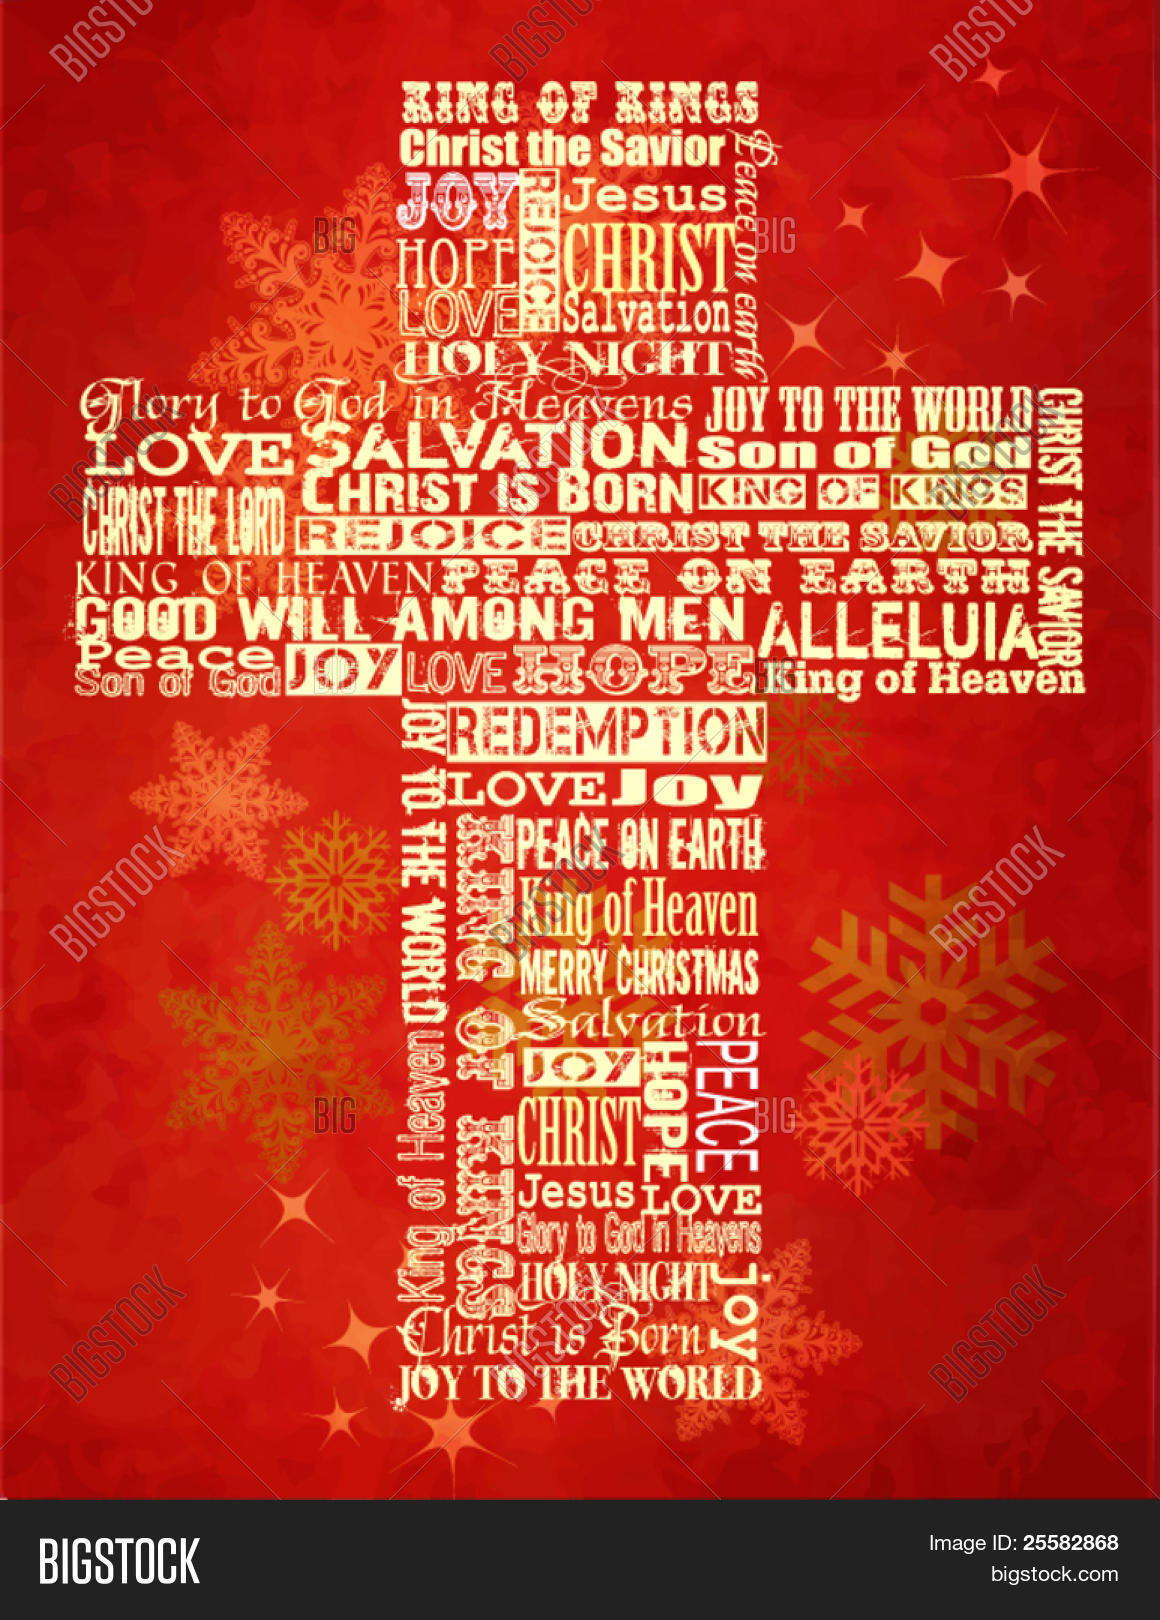 Christmas cross bright christmas vector photo bigstock christmas cross bright christmas background with christmas greetings in the shape of the cross kristyandbryce Images